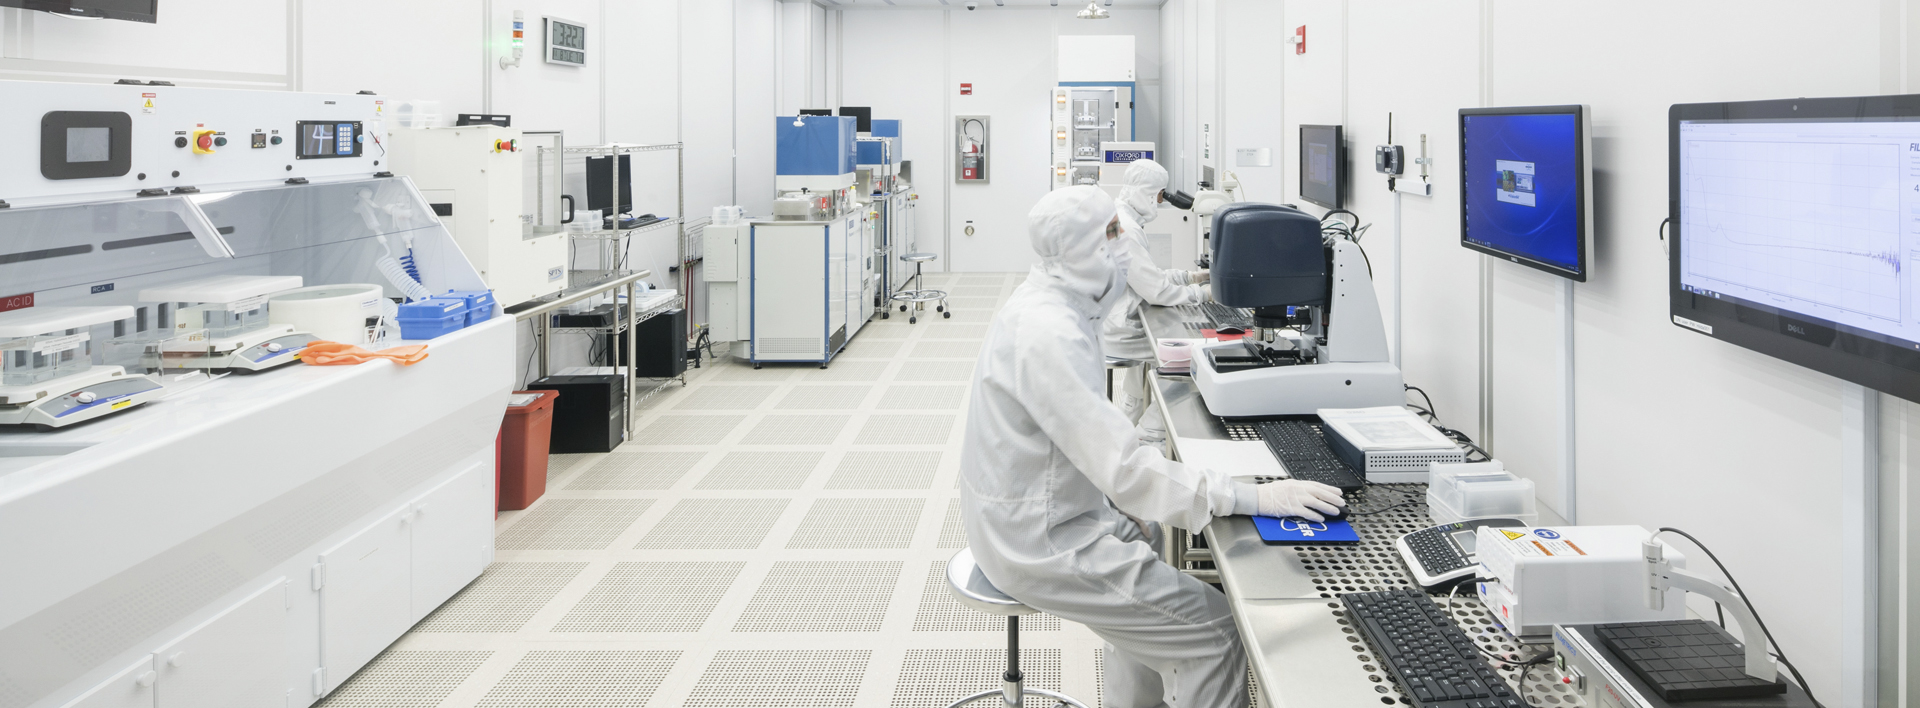 researcher in a nanoscience lab wearing cleanroom gear